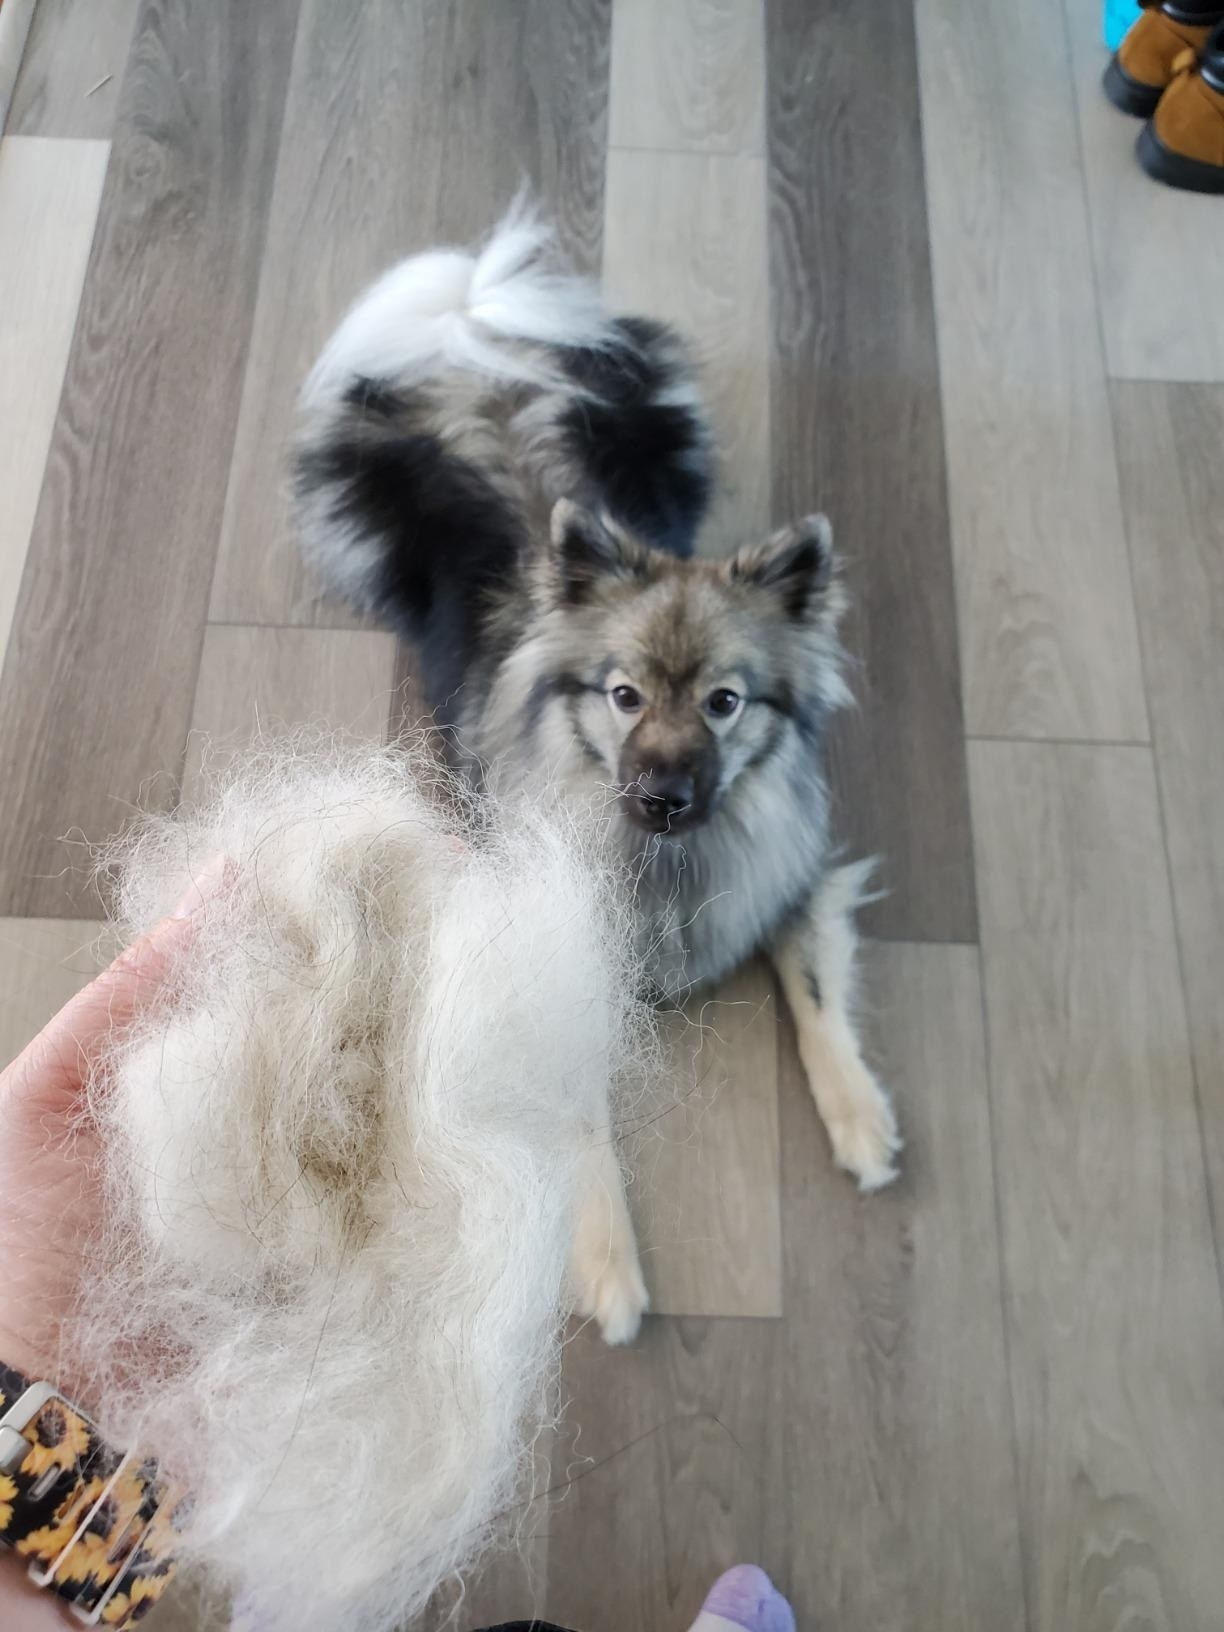 Reviewer holding a huge pile of dog hair with their dog in the background